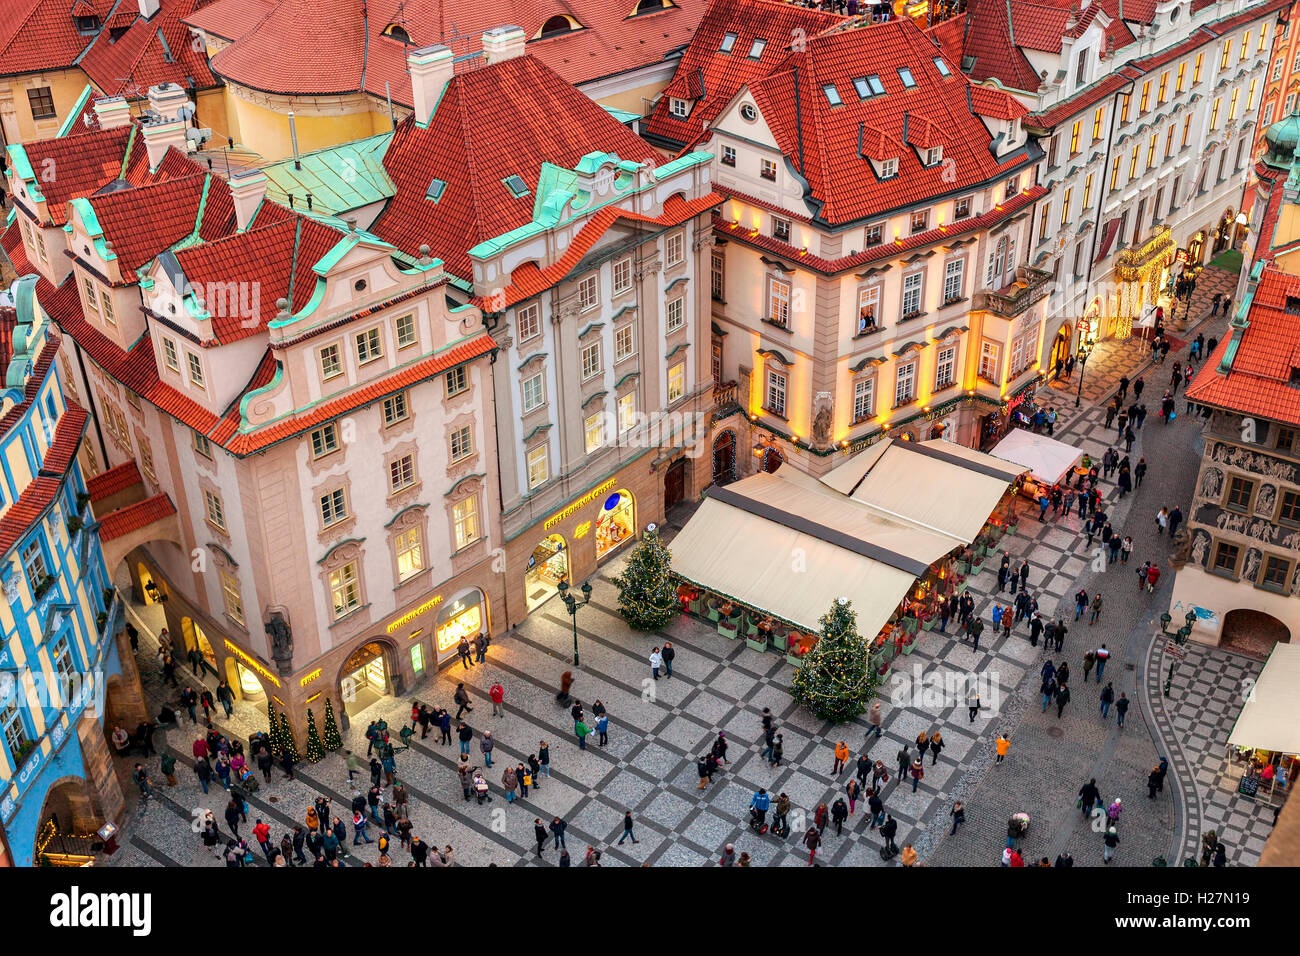 View from above on people walking among shops, restaurants and houses during Christmas time in Prague. - Stock Image